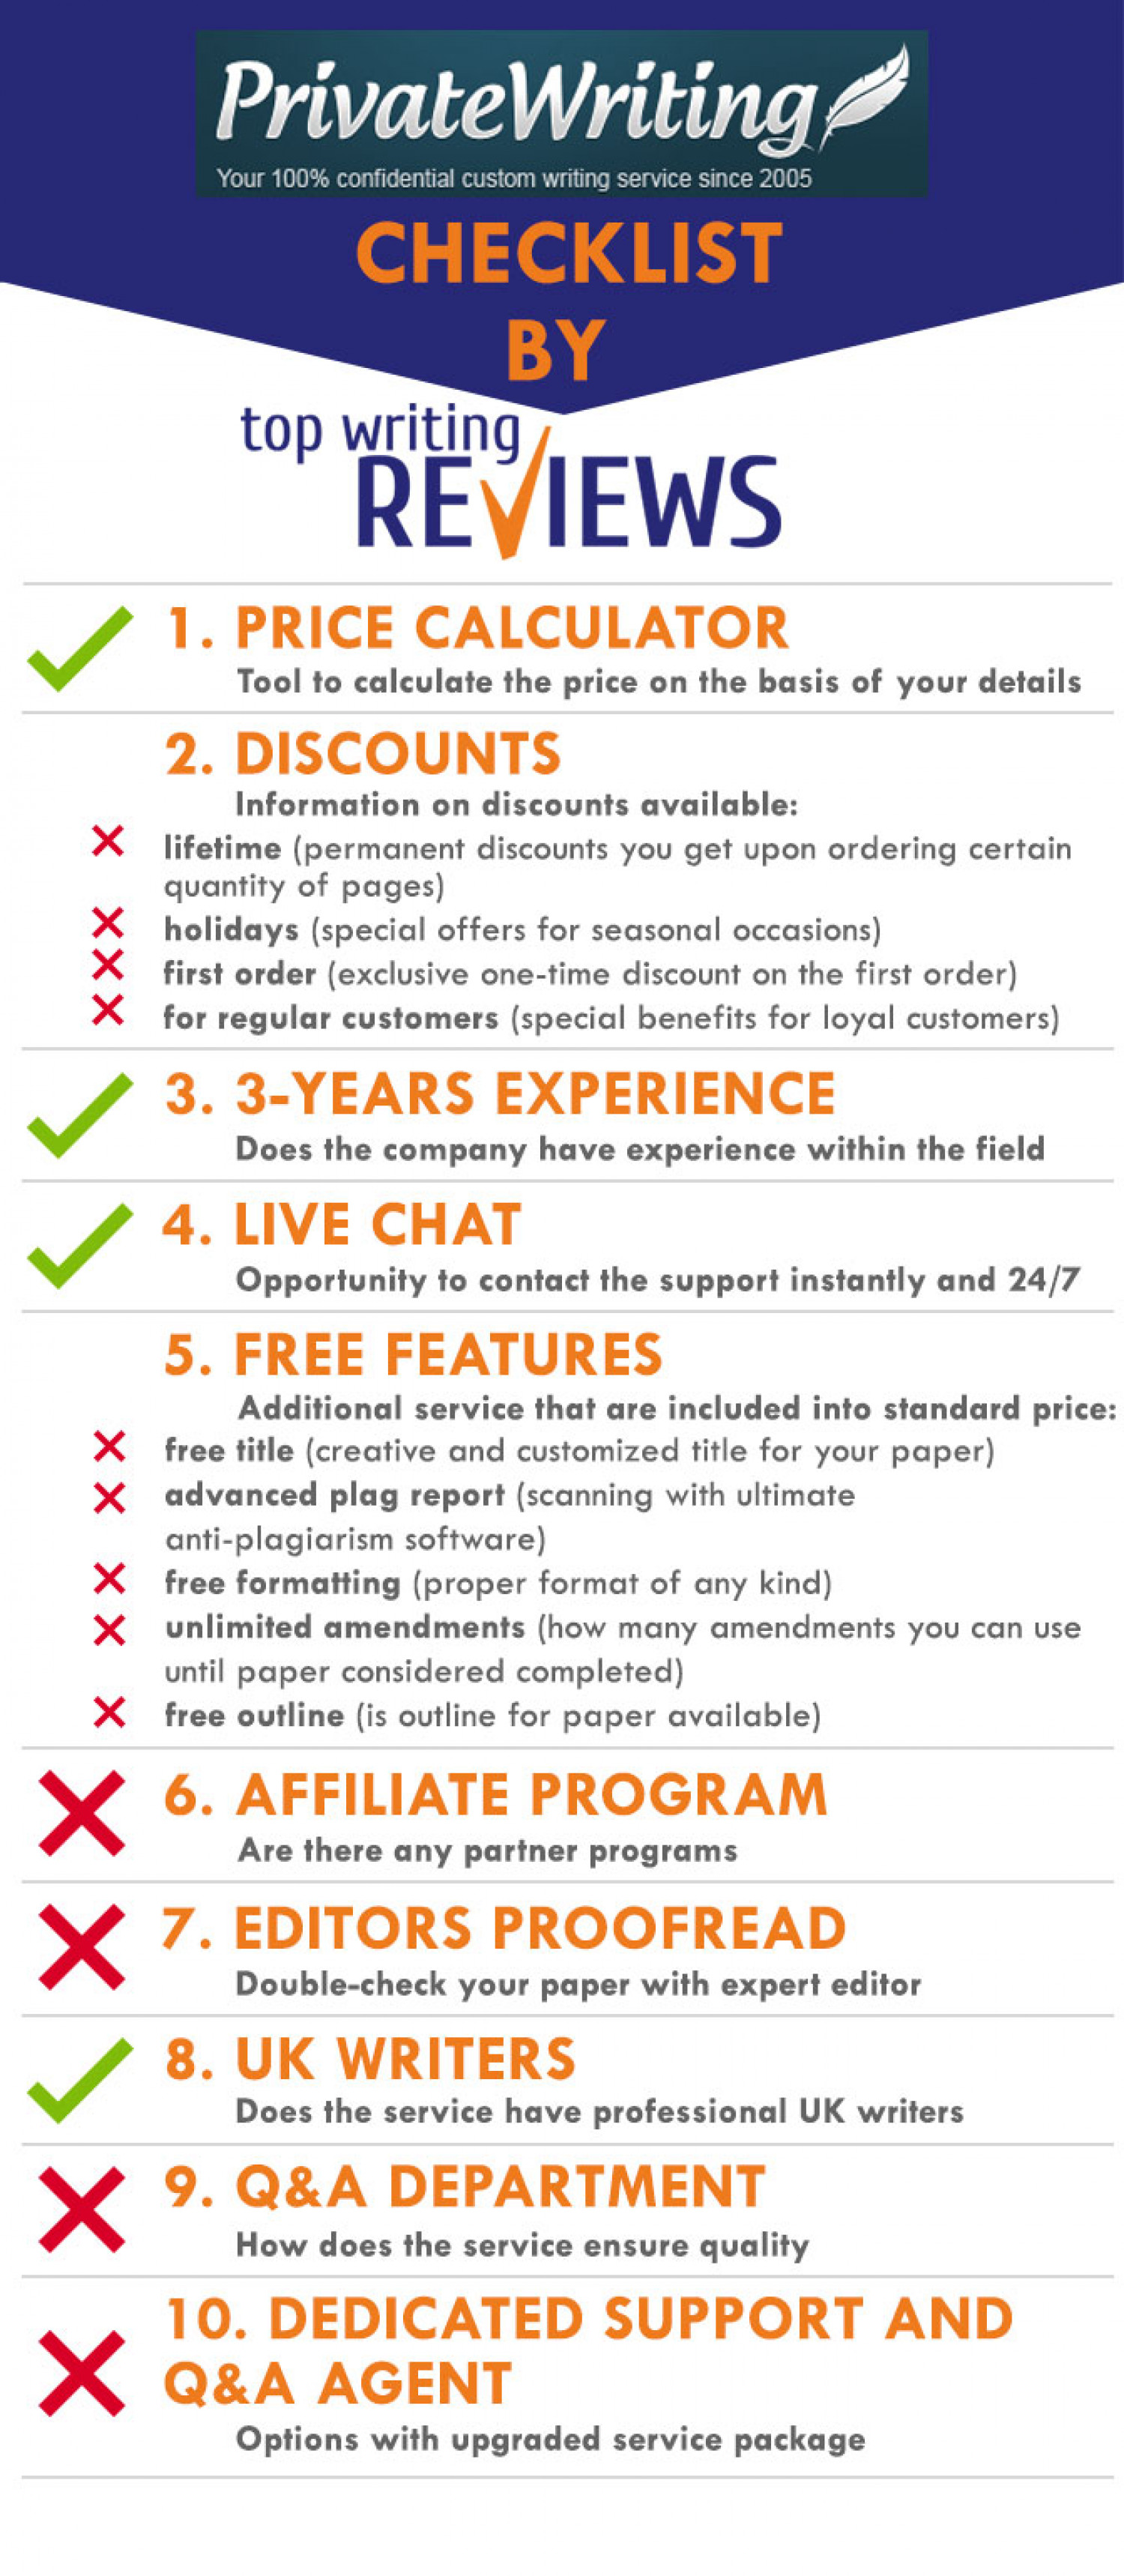 List of features and services of PrivateWriting company made by Top Writing Reviews Infographic